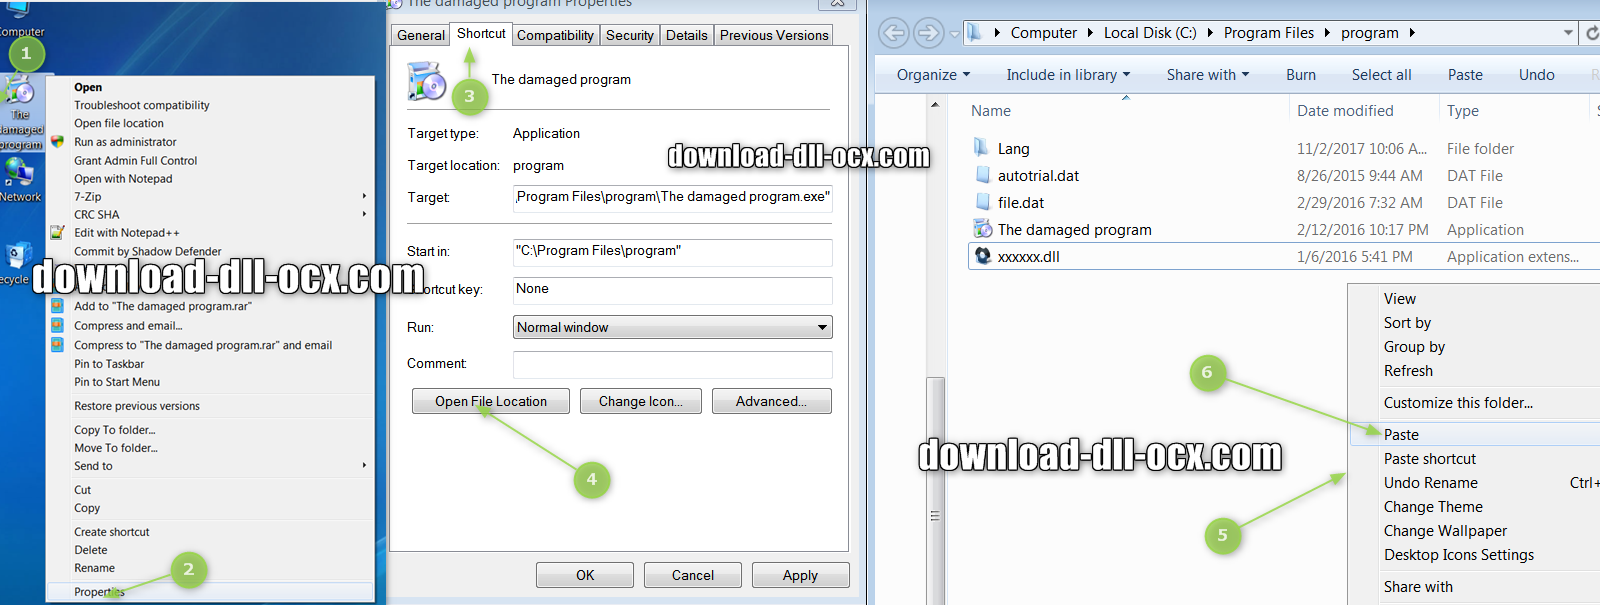 how to install abmfind.dll file? for fix missing